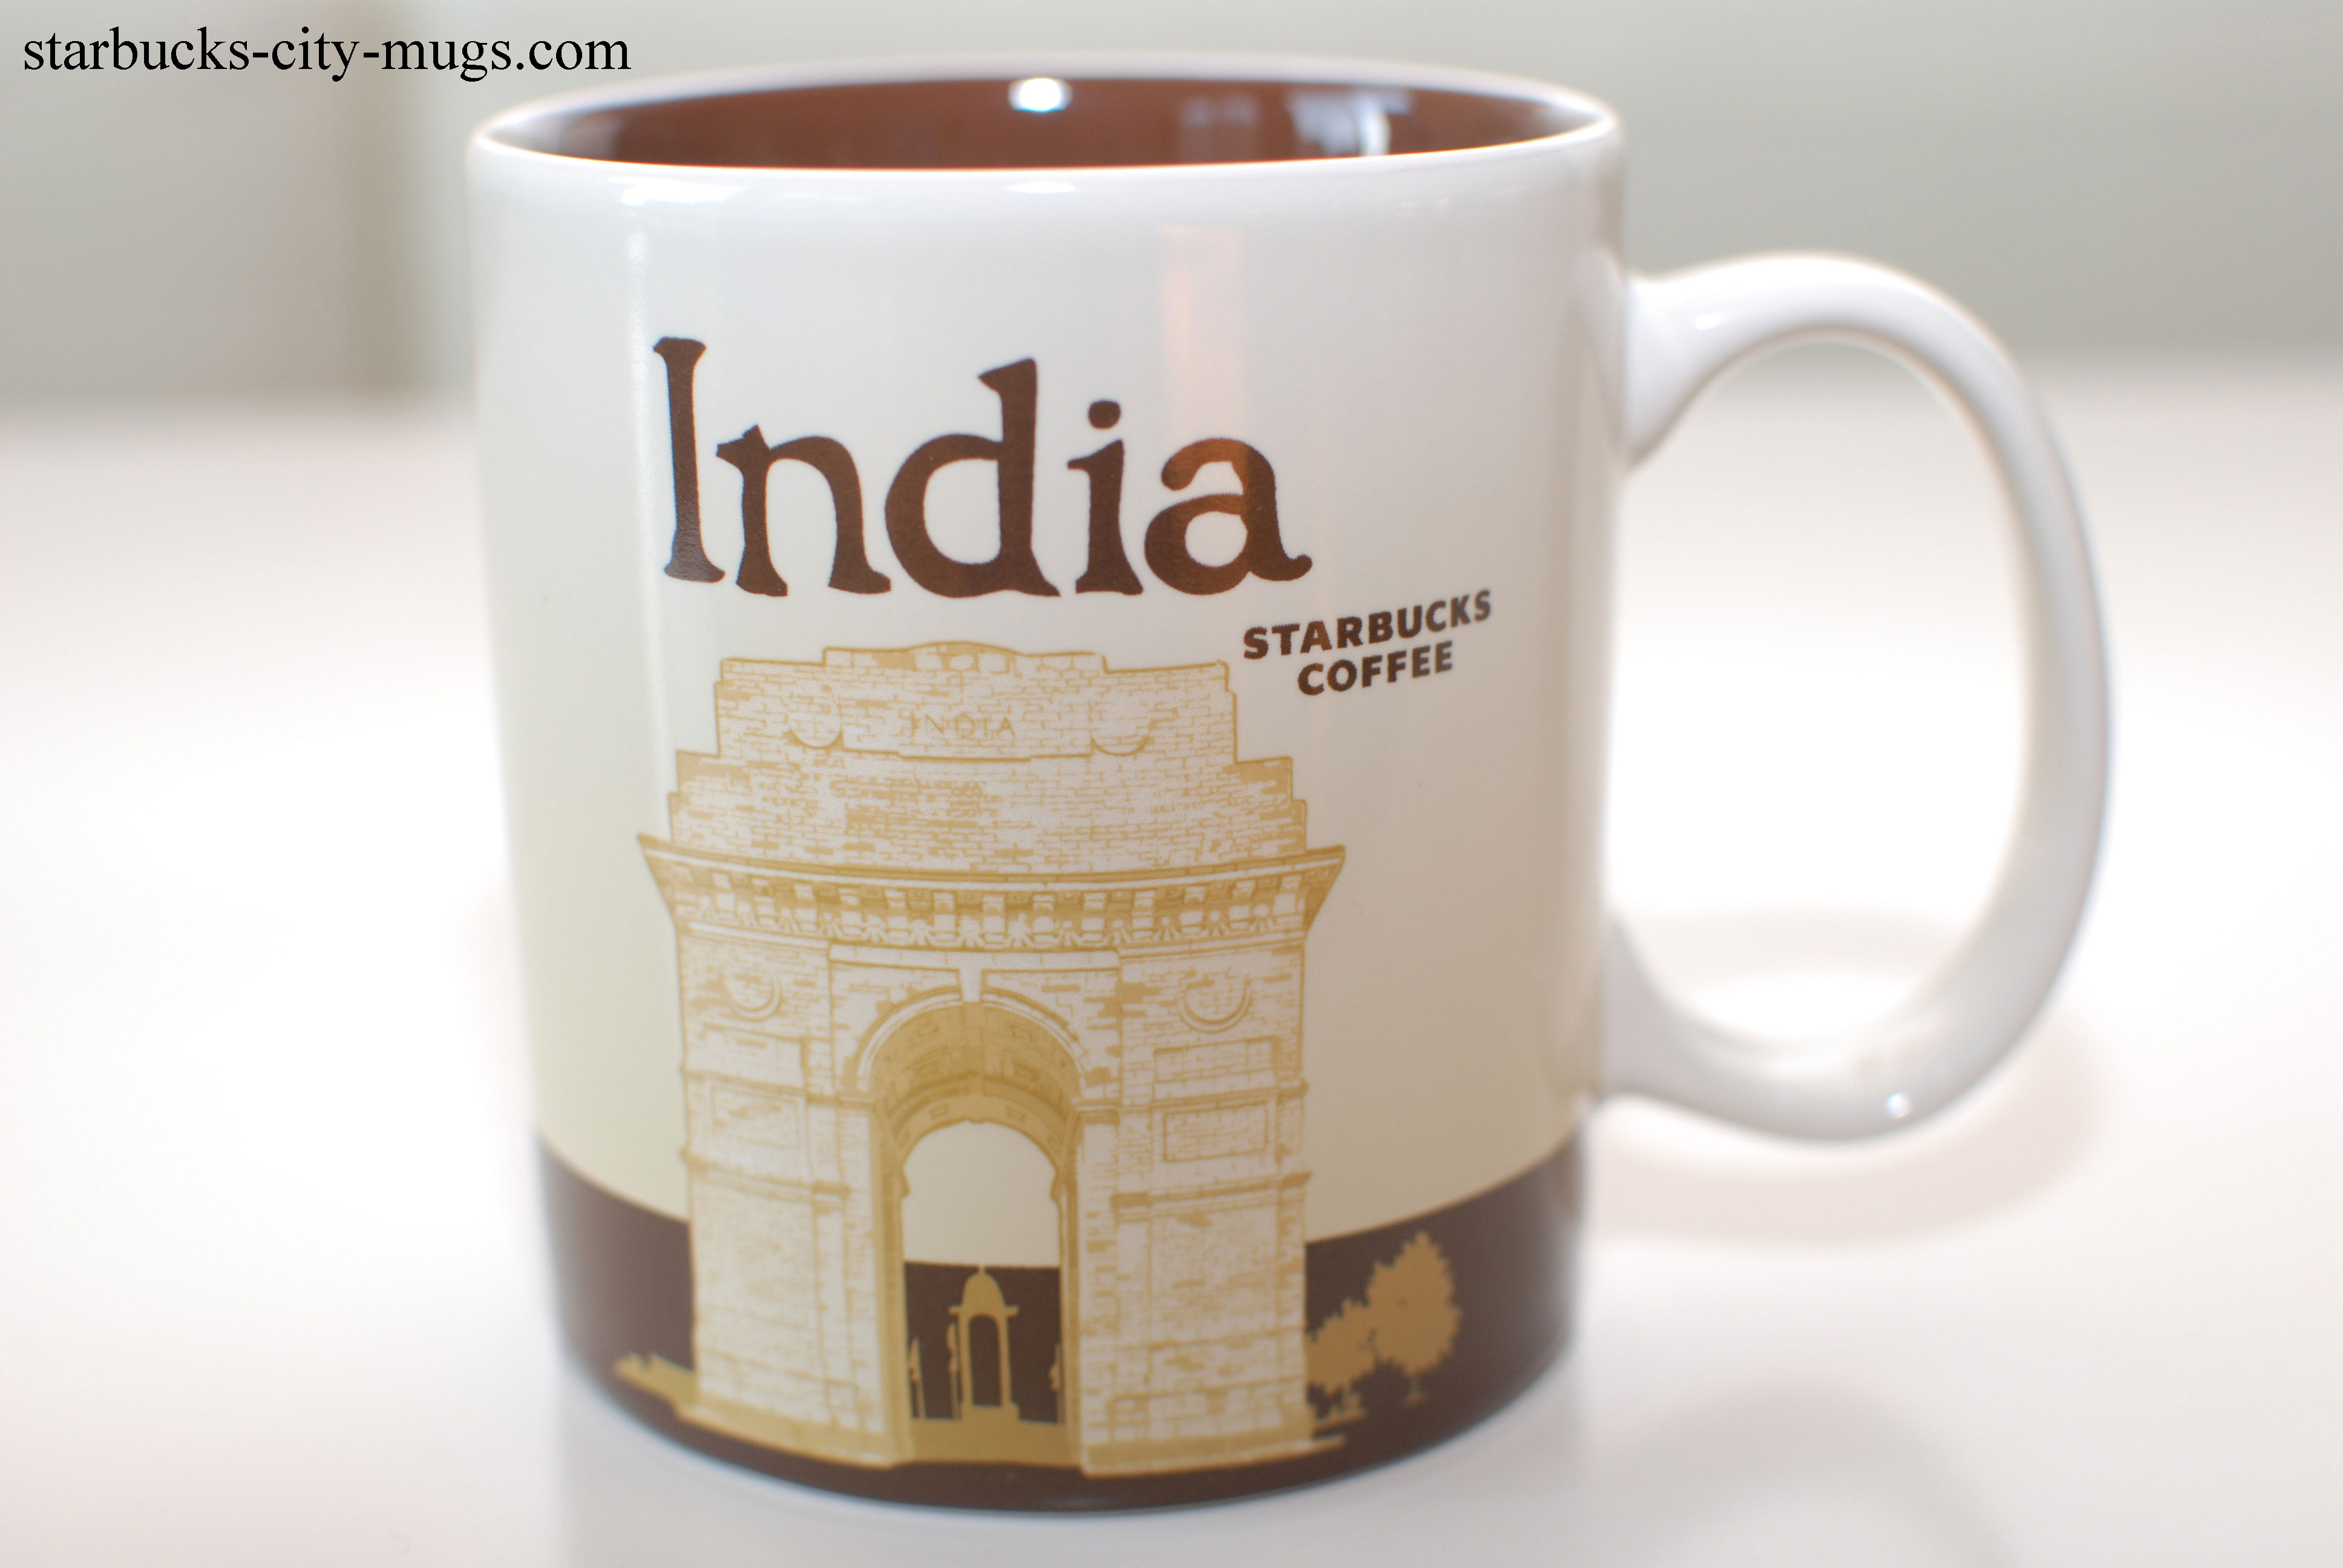 Buy Mugs Online: Shop Wide range of Mugs Online in India from Pepperfry at Best Prices. Free Shipping Easy EMI Easy Returns. Celebrate the wedding season with Pepperfry! Get up to 50% off by using the code WEDDING. Offer ends 3 December